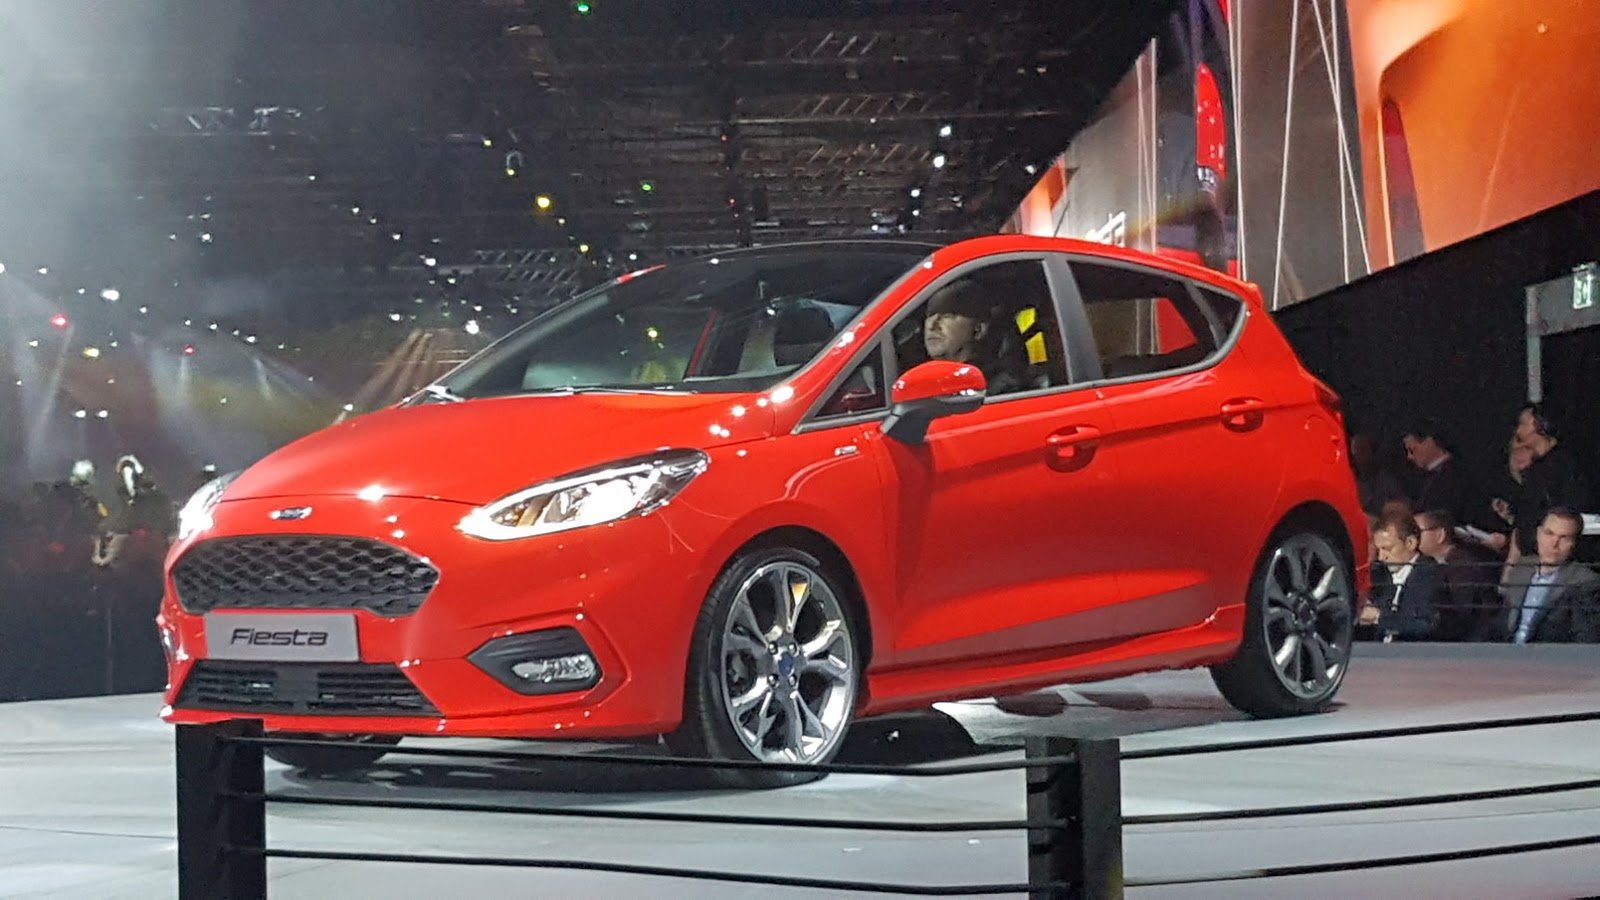 new ford fiesta enters production in europe. Black Bedroom Furniture Sets. Home Design Ideas